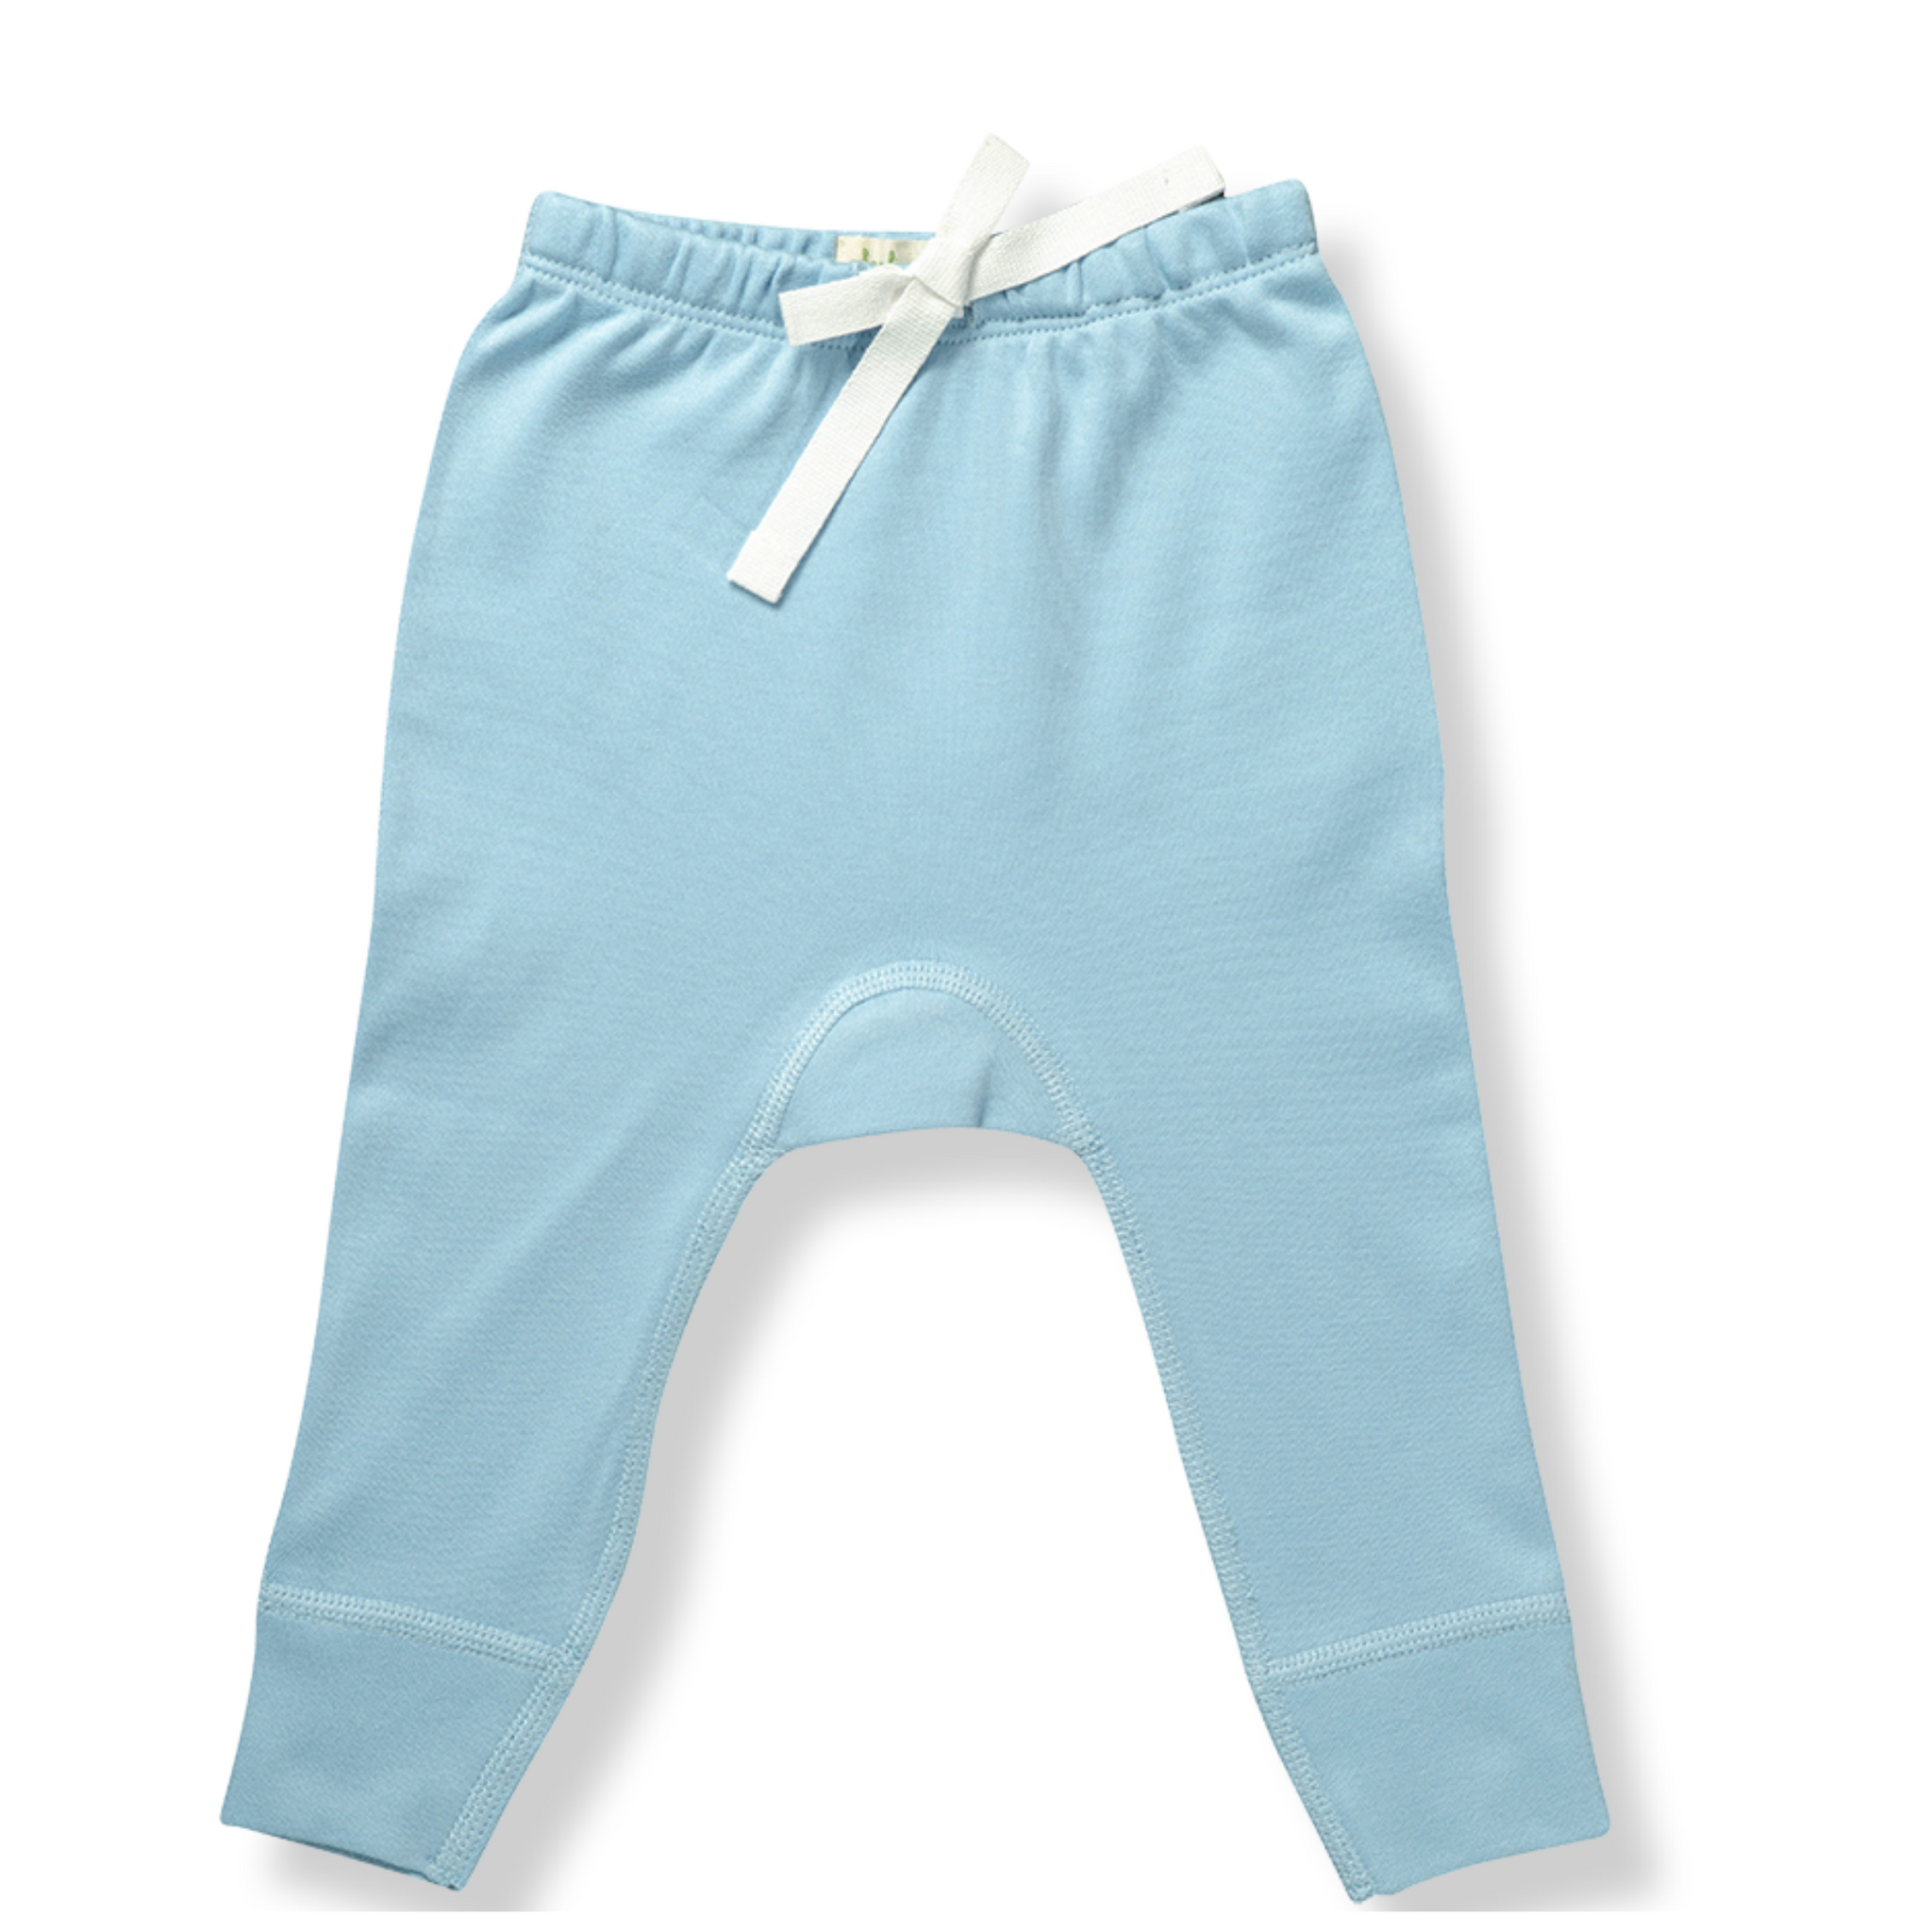 Unisex Blue Pants for Baby